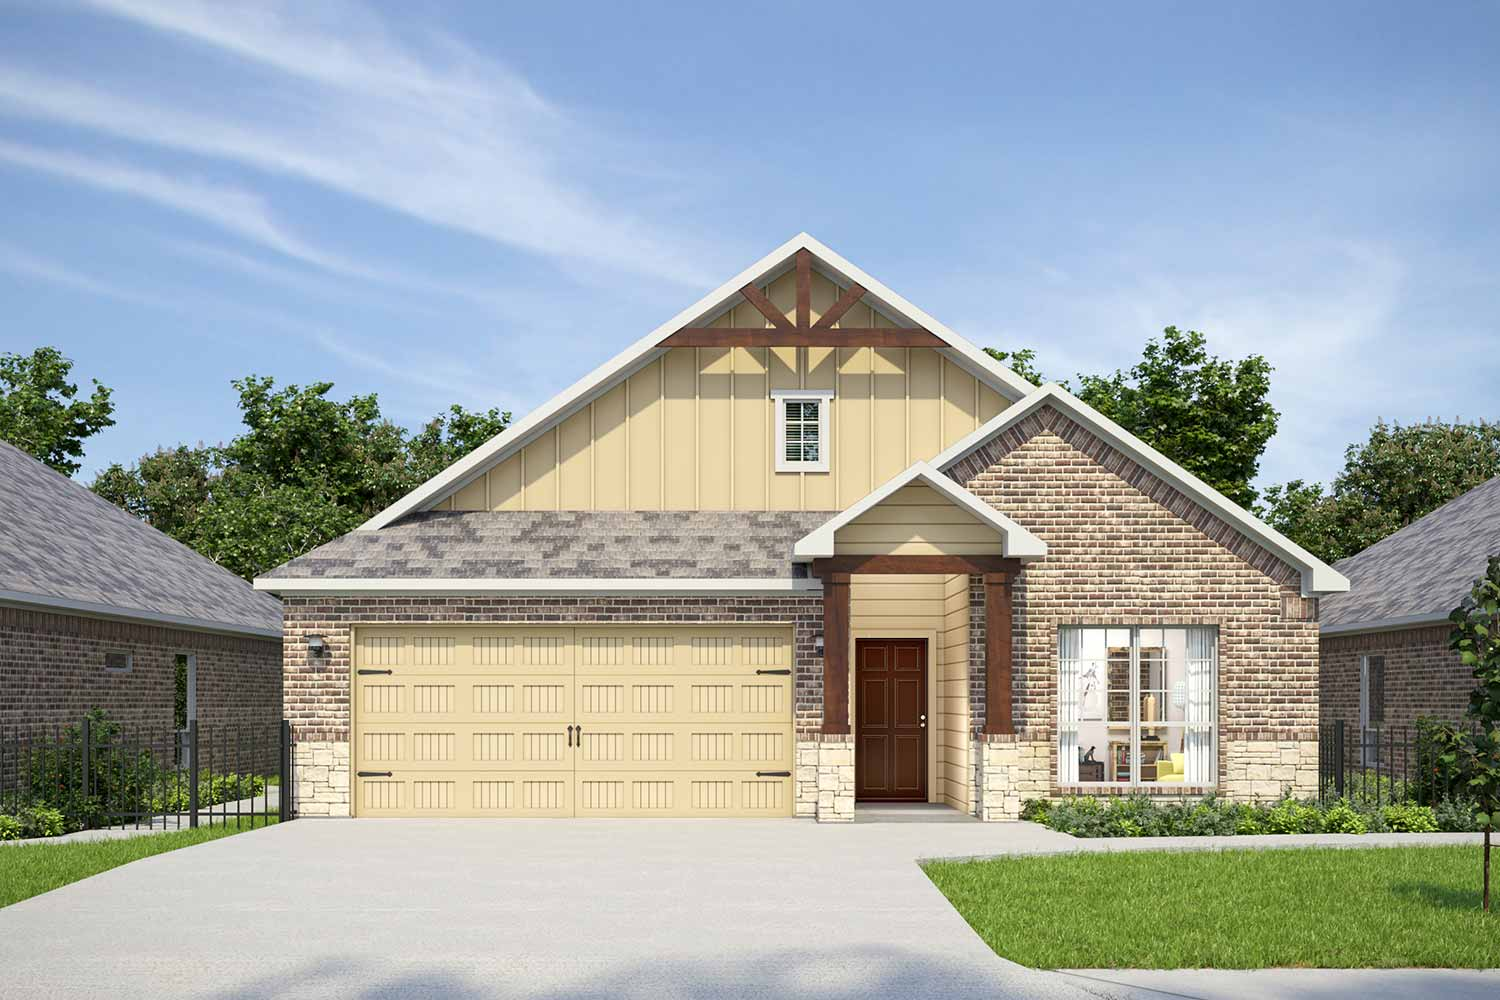 New Homes for Sale in Georgetown TX | 113 San View Dr